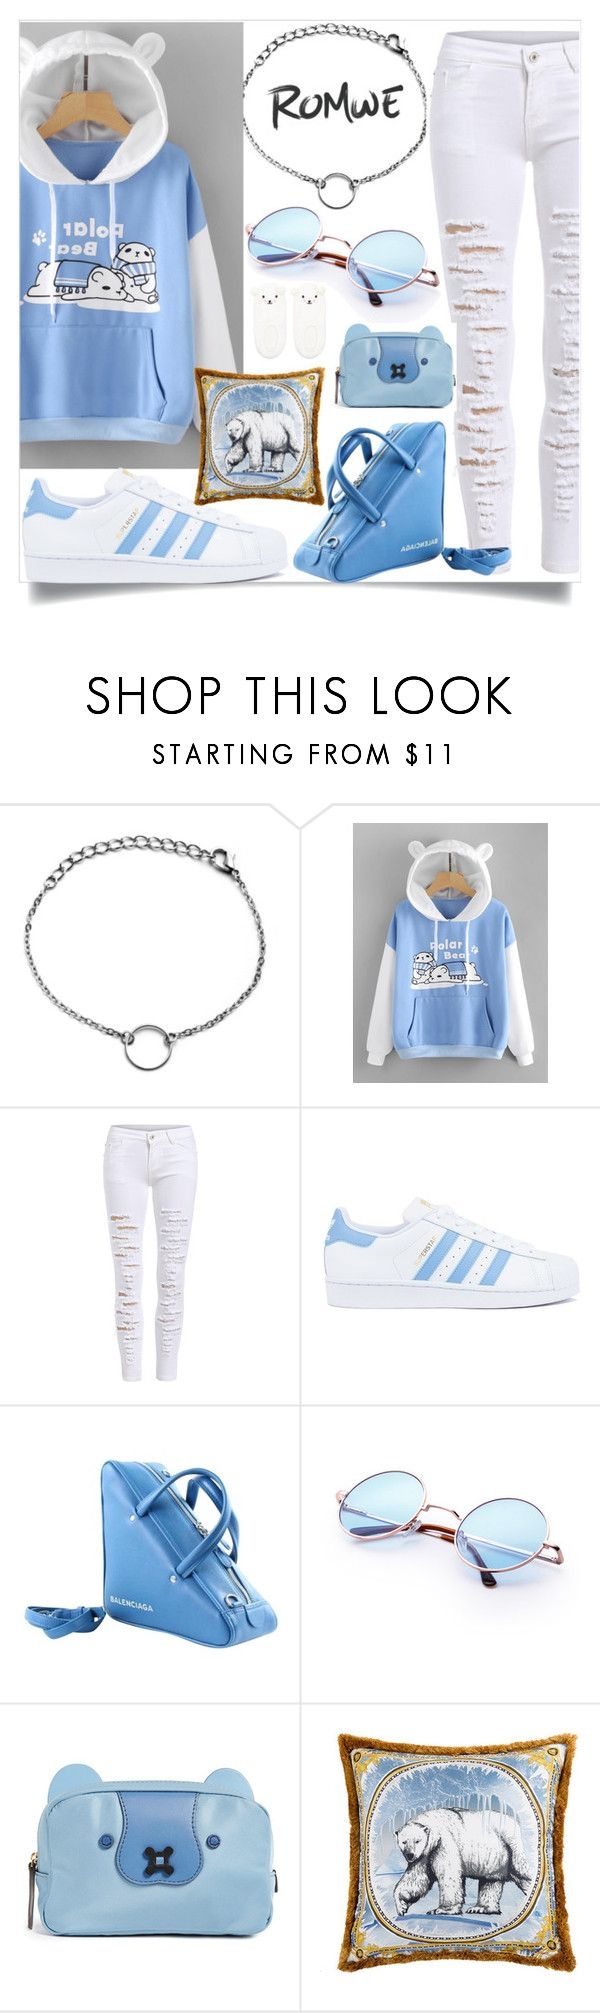 """""""Polar bear Hoodie"""" by tlb0318 on Polyvore featuring adidas, Balenciaga, Anya Hindmarch, Versace and Forever 21"""